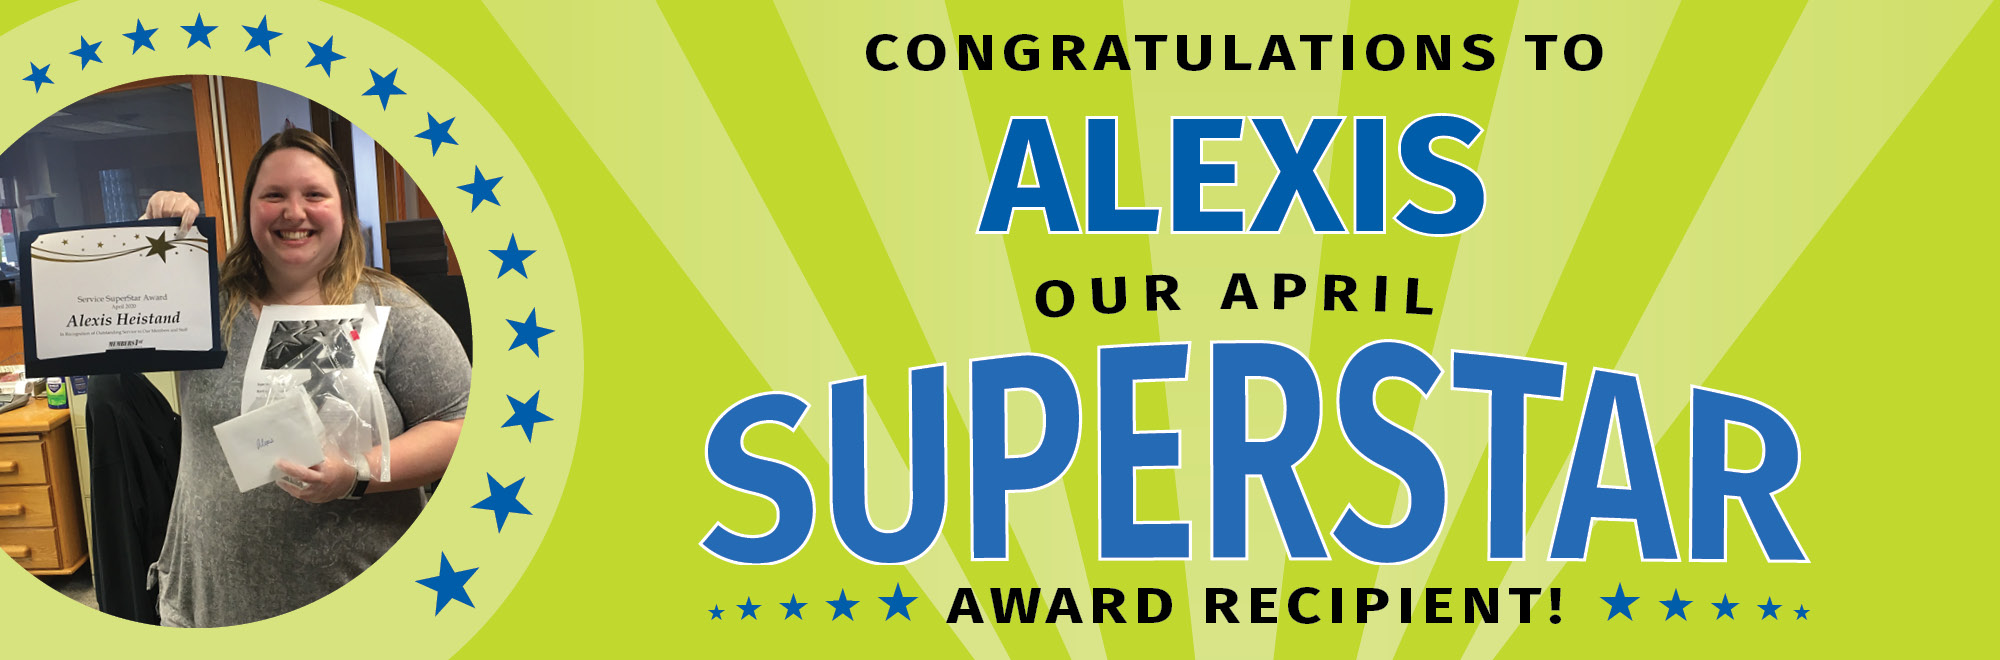 Alexis is our April Superstar!